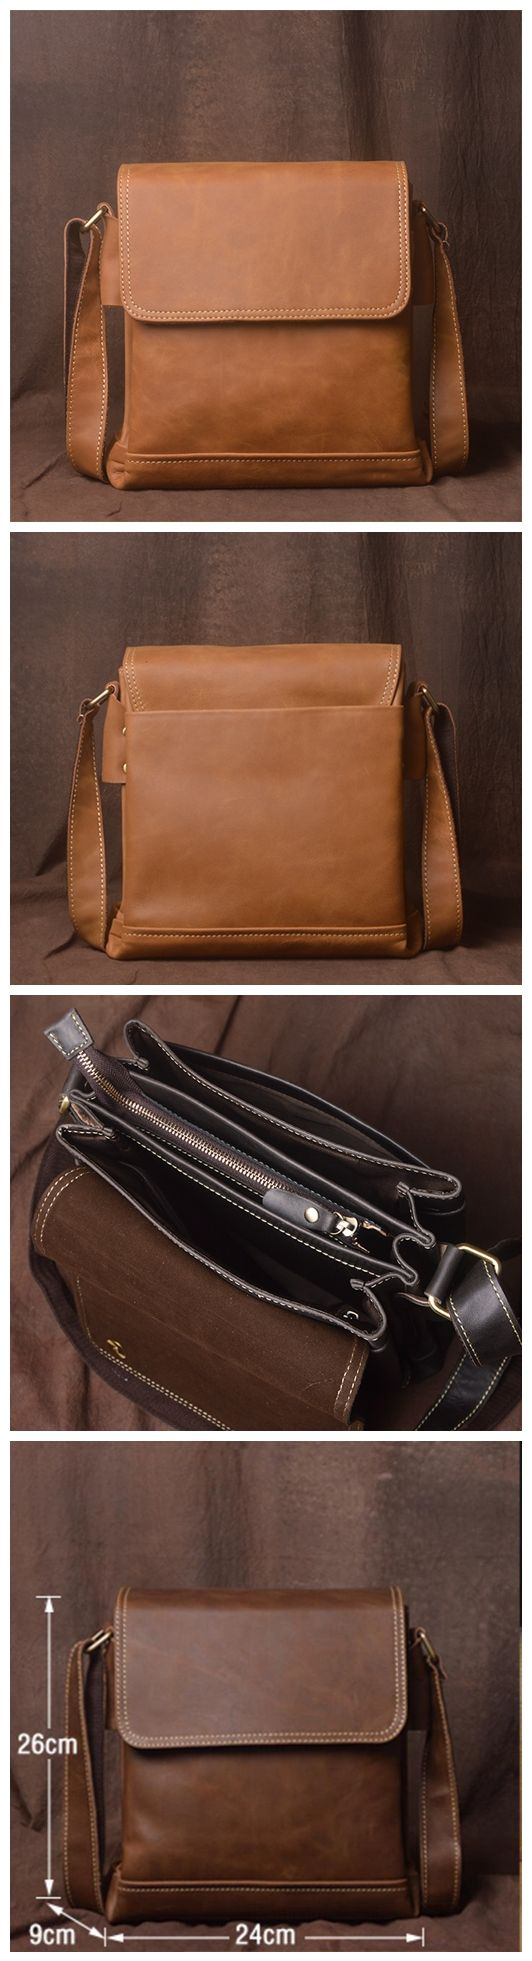 Genuine Leather Messenger Bag, Leather Crossbody Bag for Men, JZ013